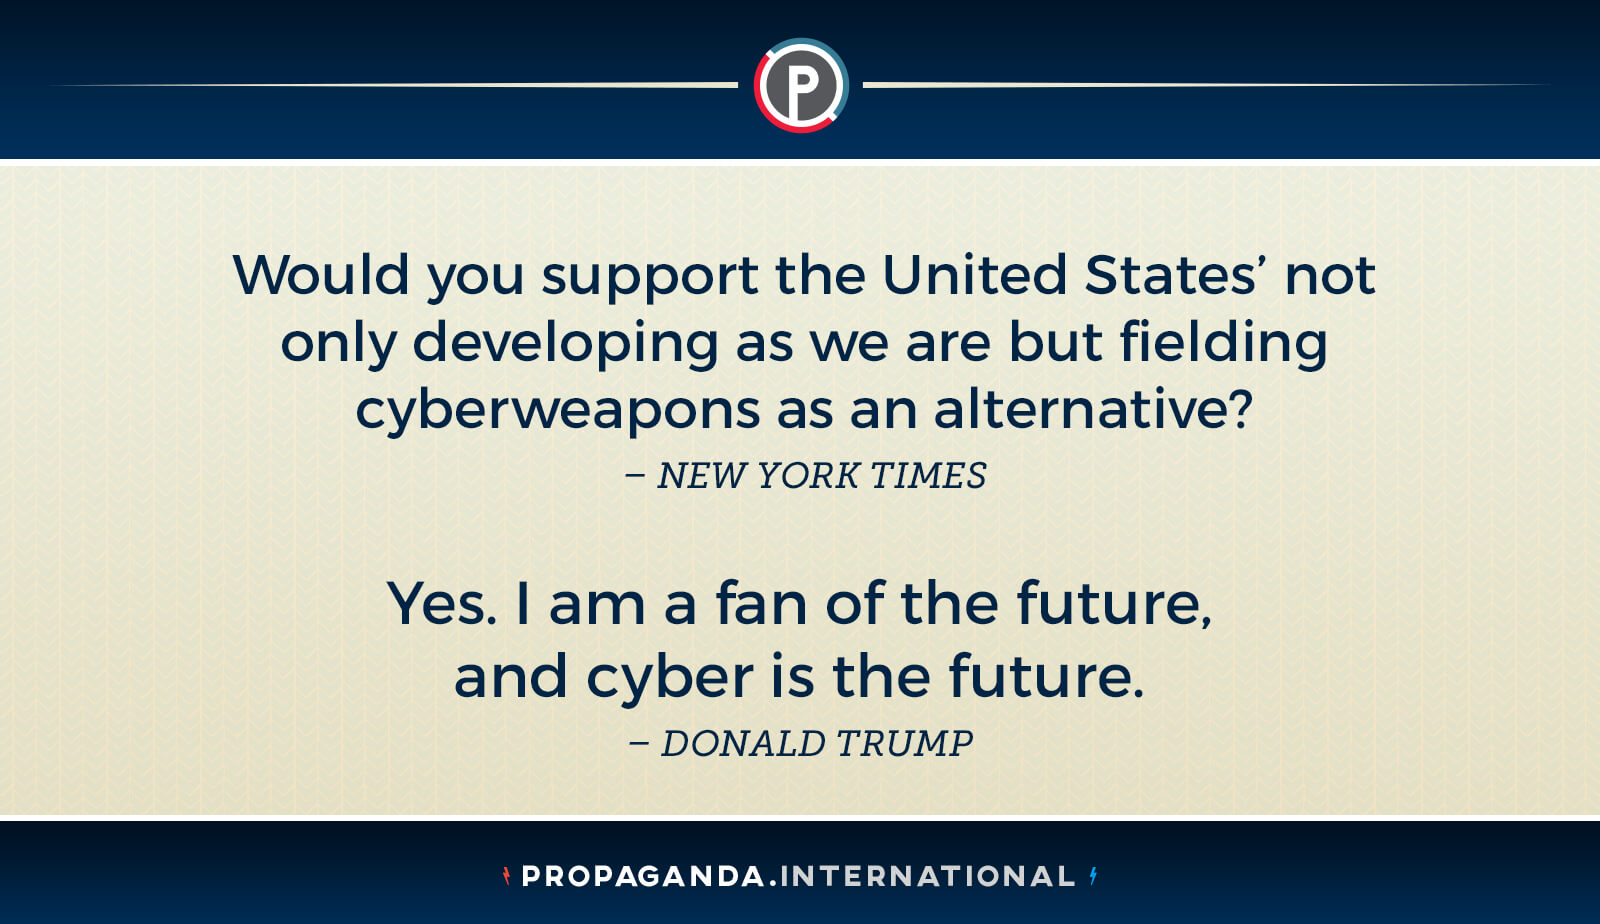 Cyber is the future